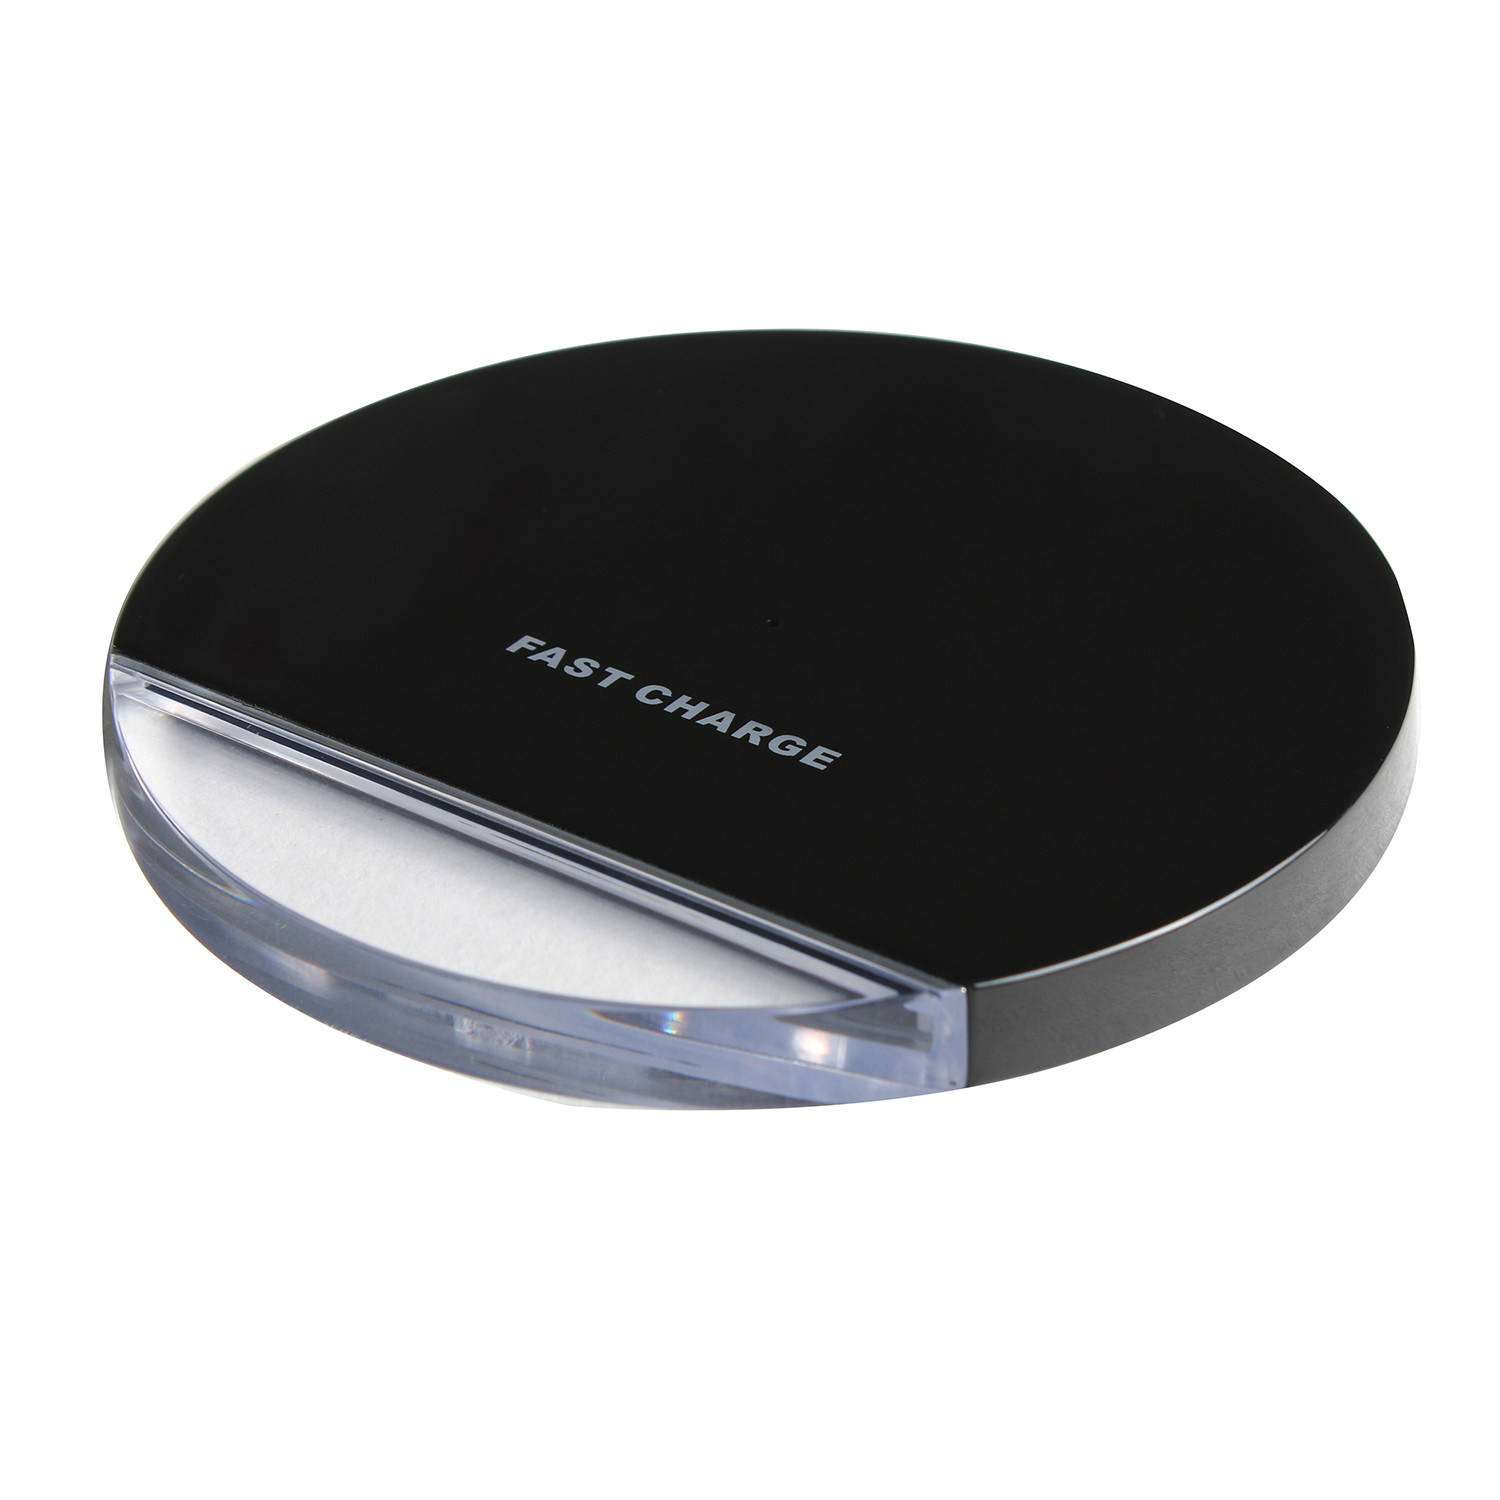 Private Model Fast Wireless Charge with Generalplus Solution for Smart Phone Outpout 10W No Heat